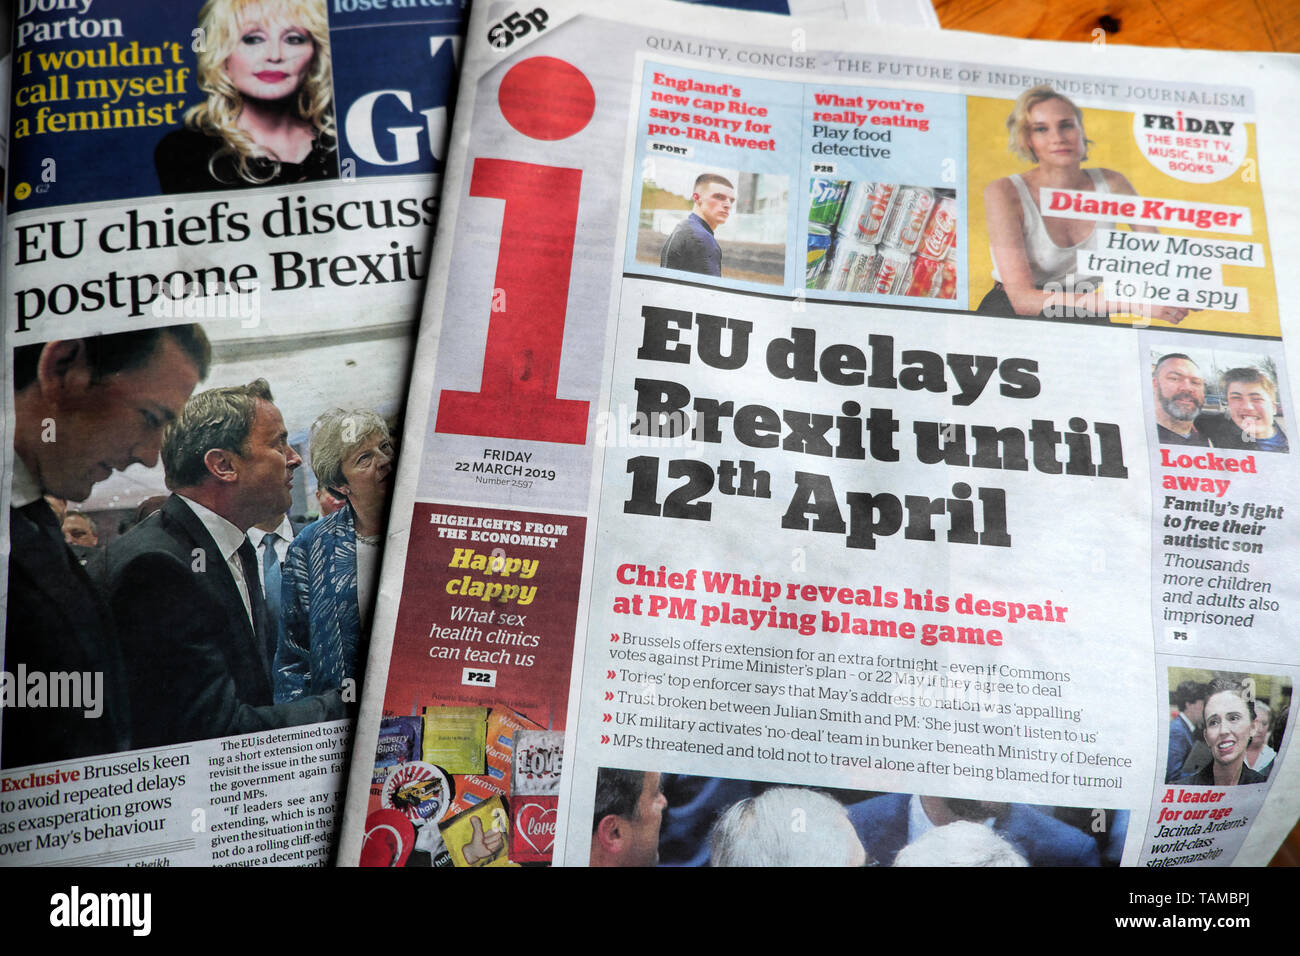 'EU delays Brexit until 12th April' newspaper headline regarding Brexit deadline delay in the i newspaper on 22 March 2019 London England UK Great Britain - Stock Image